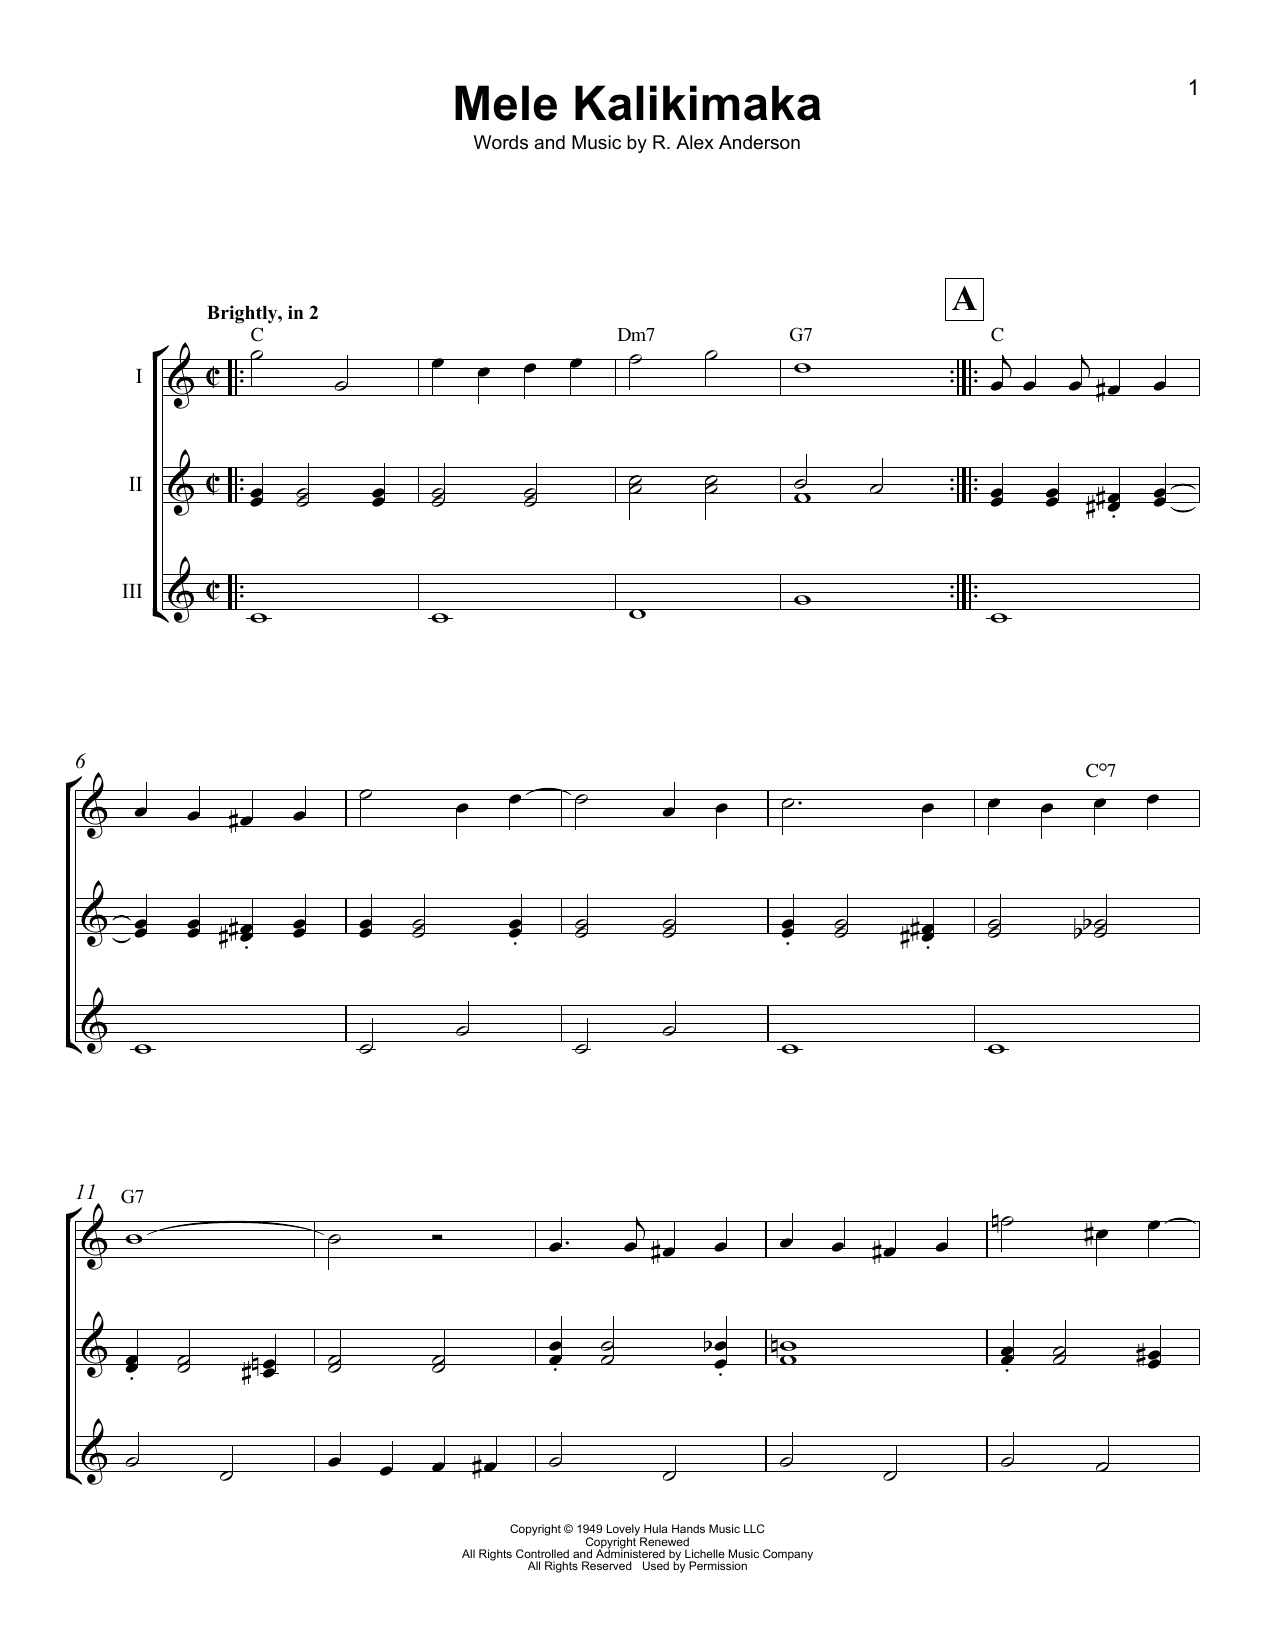 R. Alex Anderson Mele Kalikimaka sheet music notes and chords. Download Printable PDF.